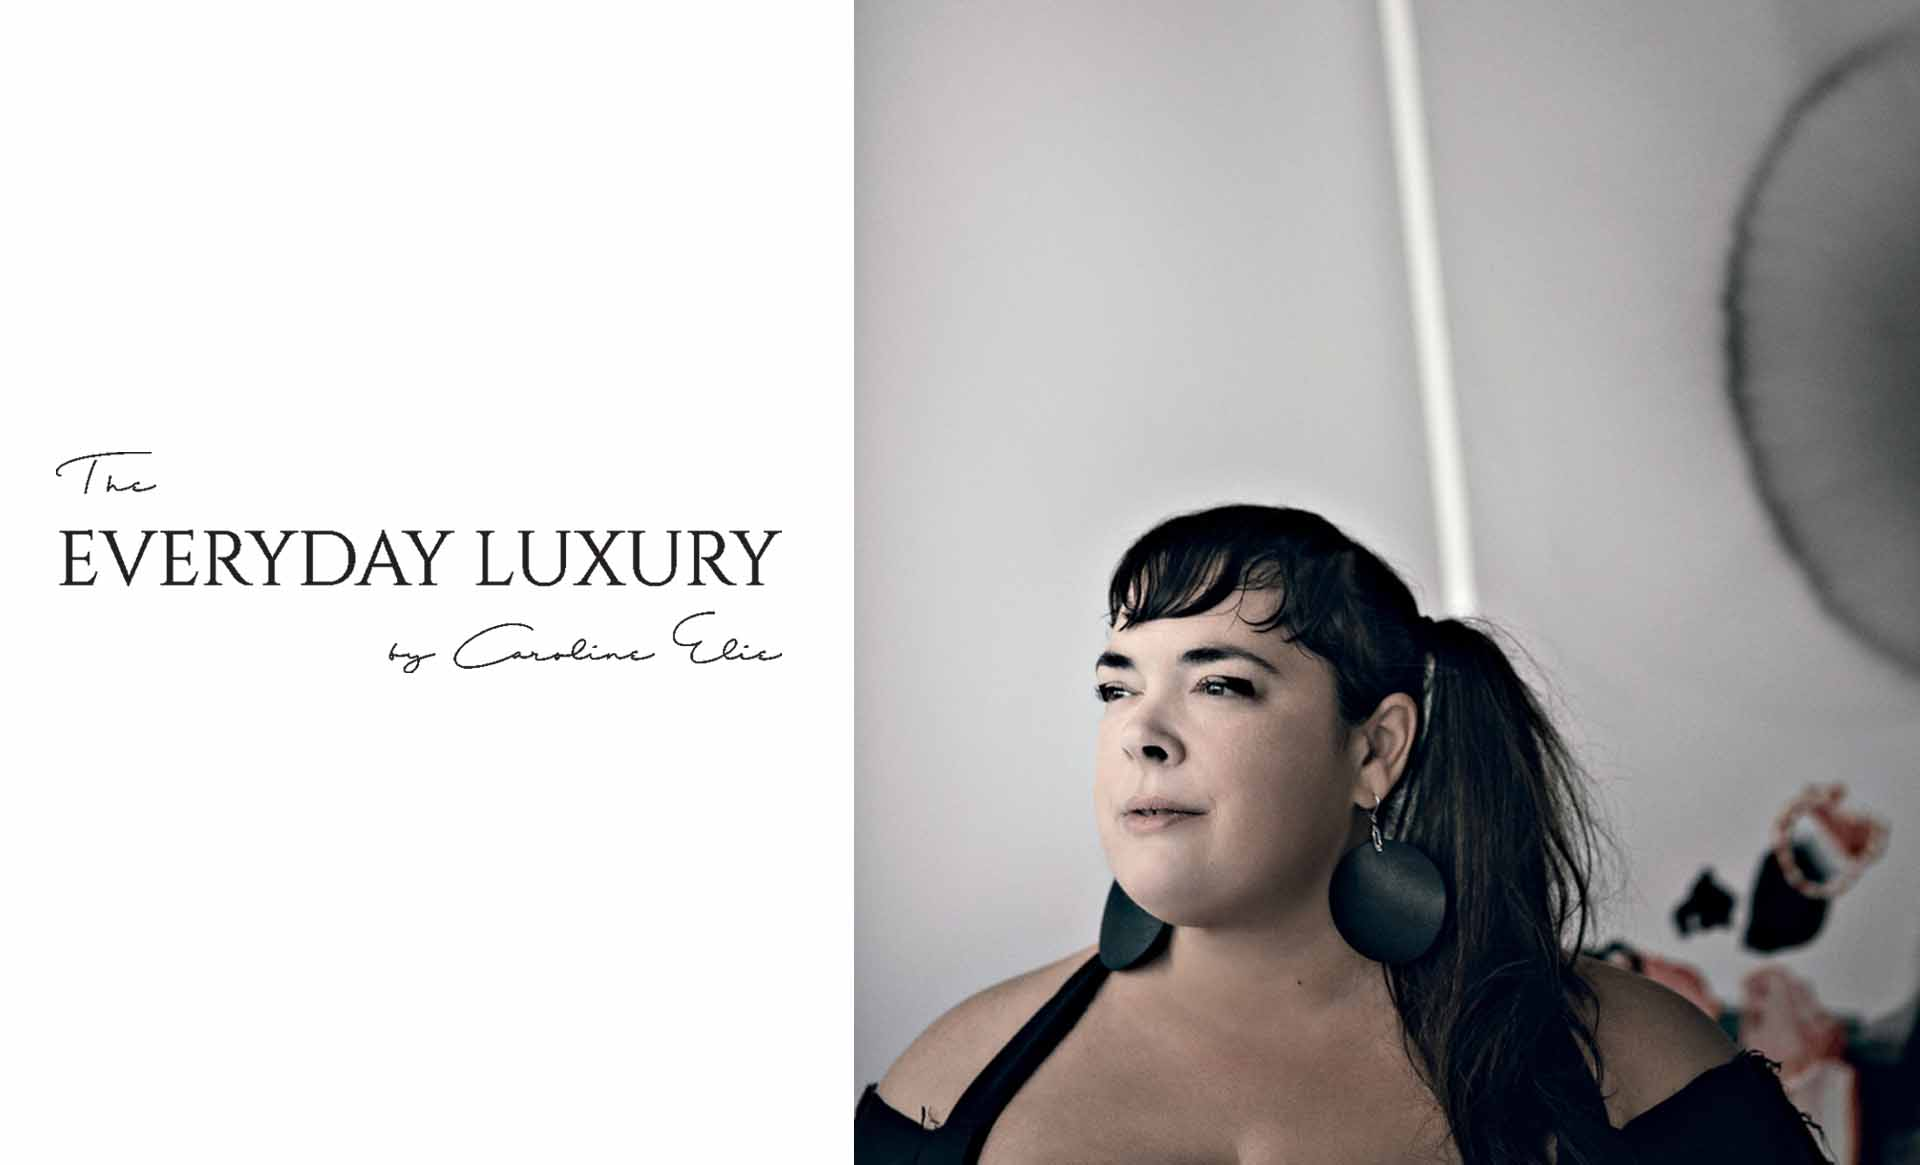 Entrevue d'Anne-Marie Chagnon pour le site The Everyday Luxury